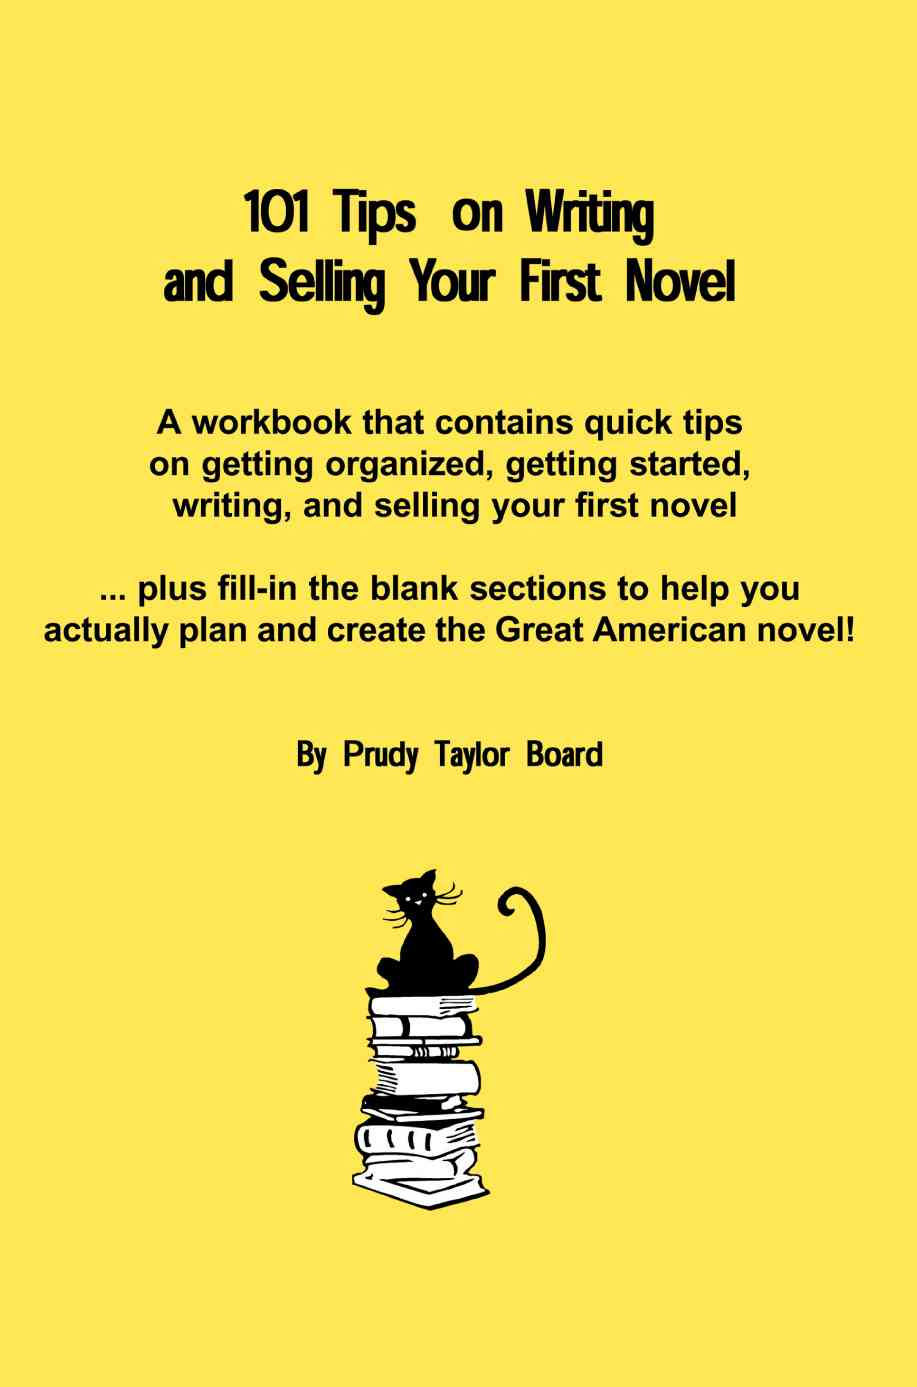 tips for writing novels